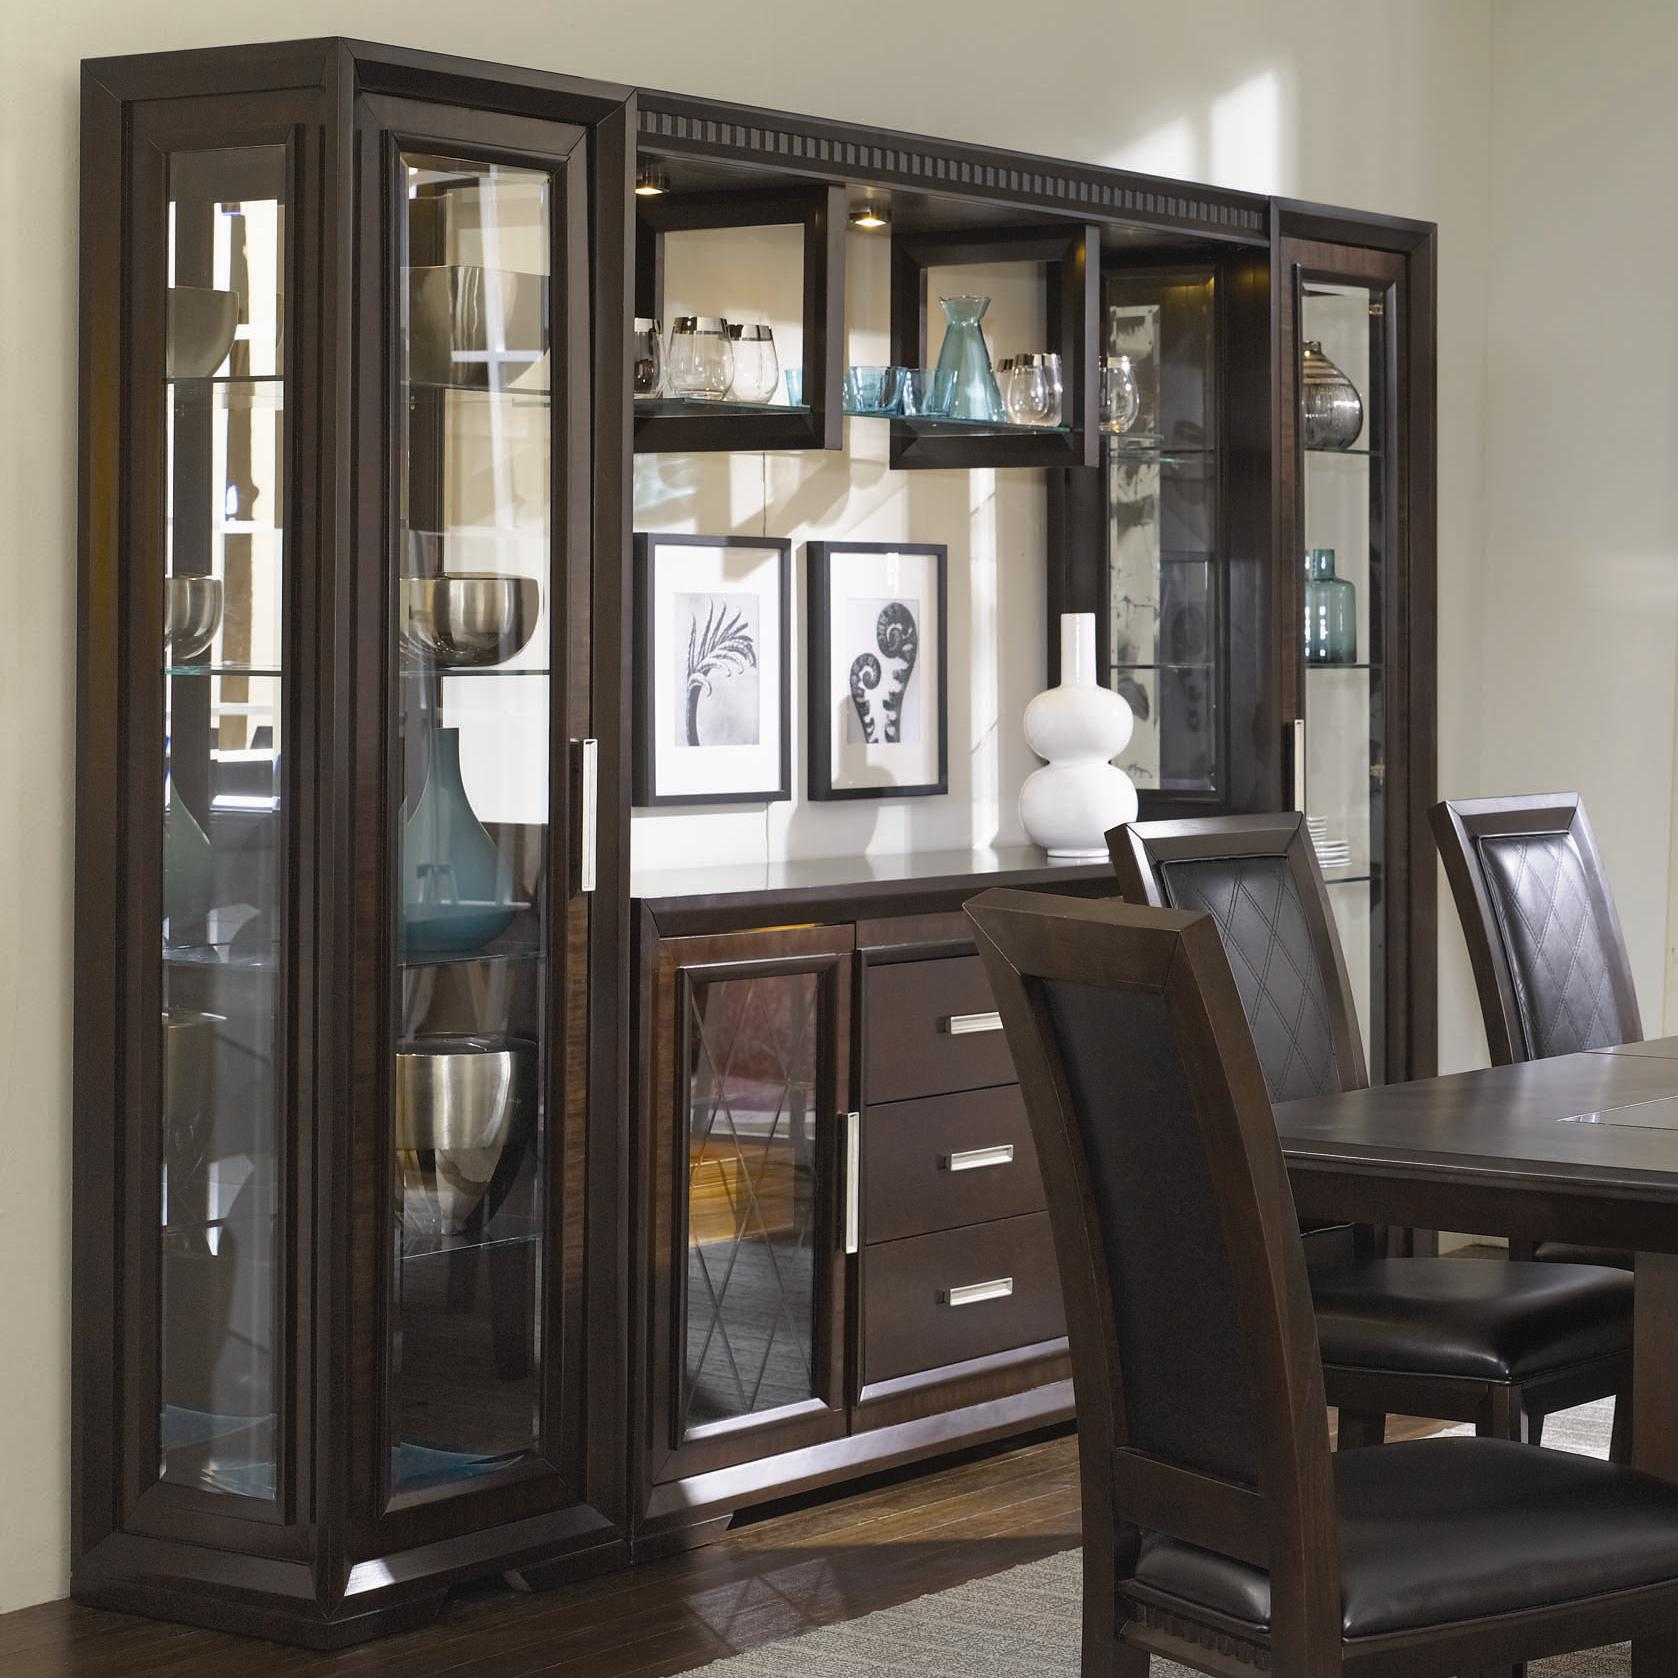 China Cabinet With Server Light Bridge And Storage Bwood By Najarian Wil Furniture Corpus Christi Kingsville Calallen Texas